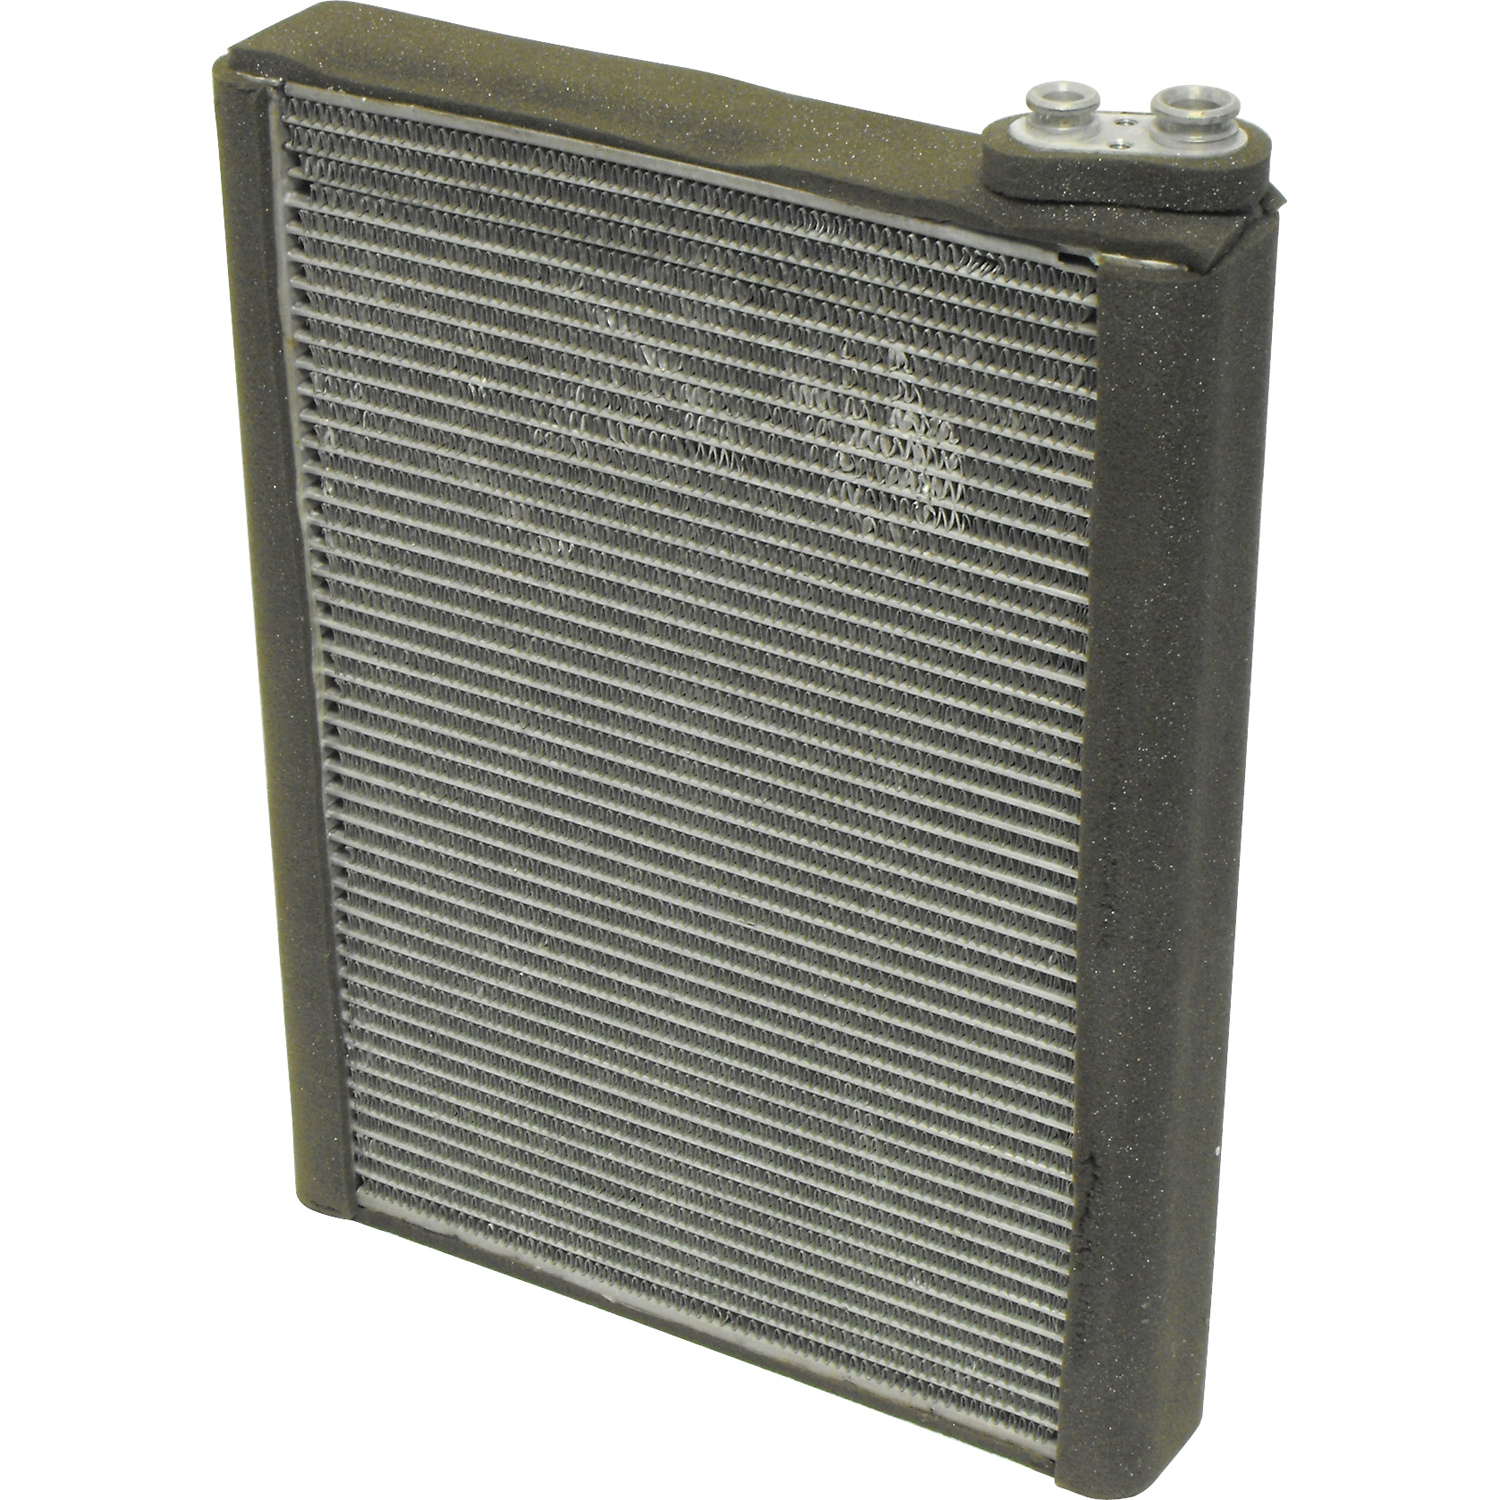 New A/C Evaporator EV 939675PFC - 25865640 CTS STS G8 Caprice SS